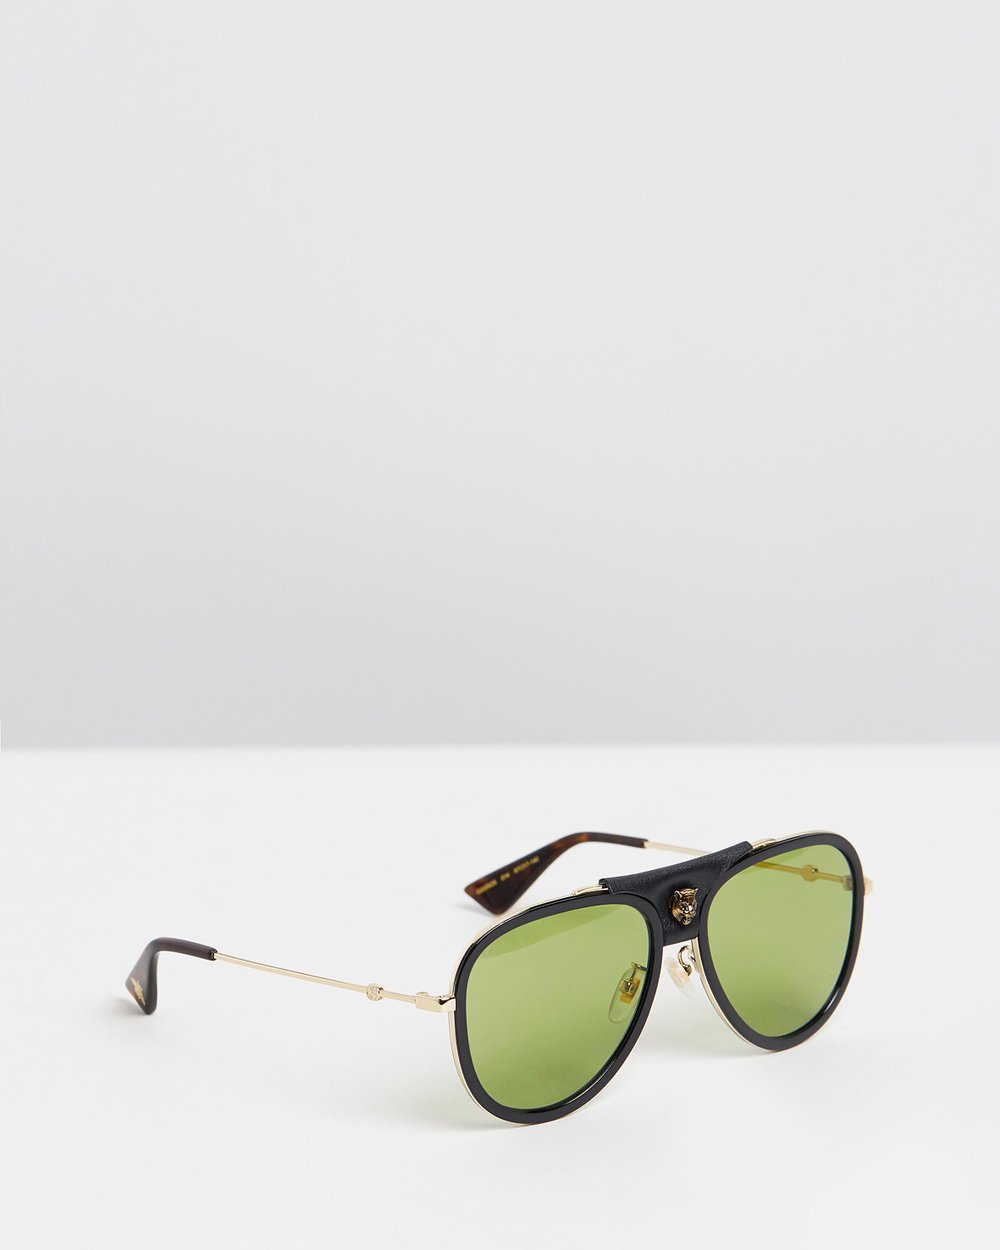 GG0062S by Gucci Online   THE ICONIC   Australia 0d650ed779